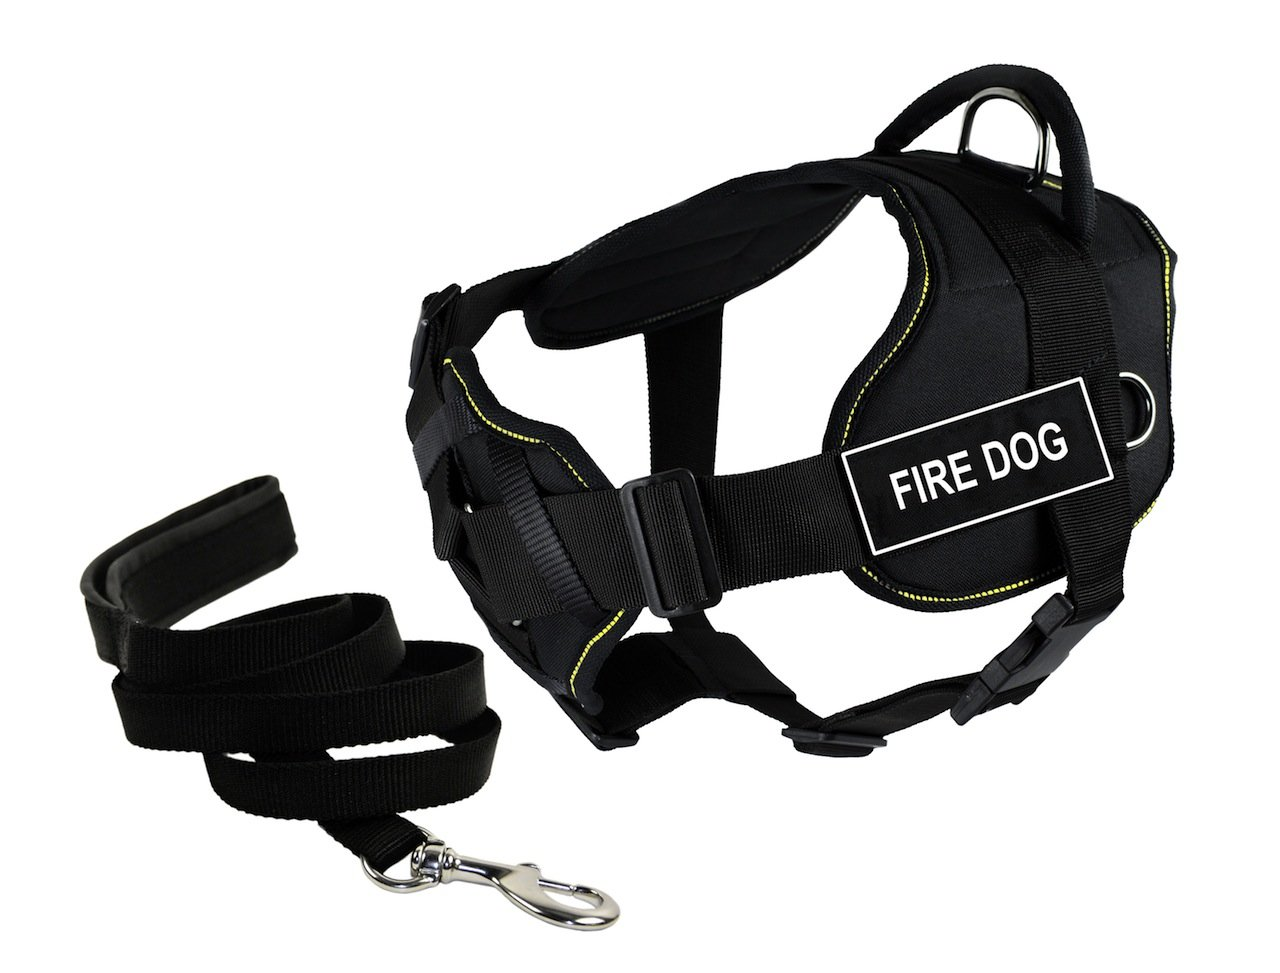 Dean & Tyler Bundle of 34 to 47-Inch DT Fun Harness with Chest Support and 6-Feet Stainless Snap Padded Puppy Leash, Fire Dog, Black with Yellow Trim